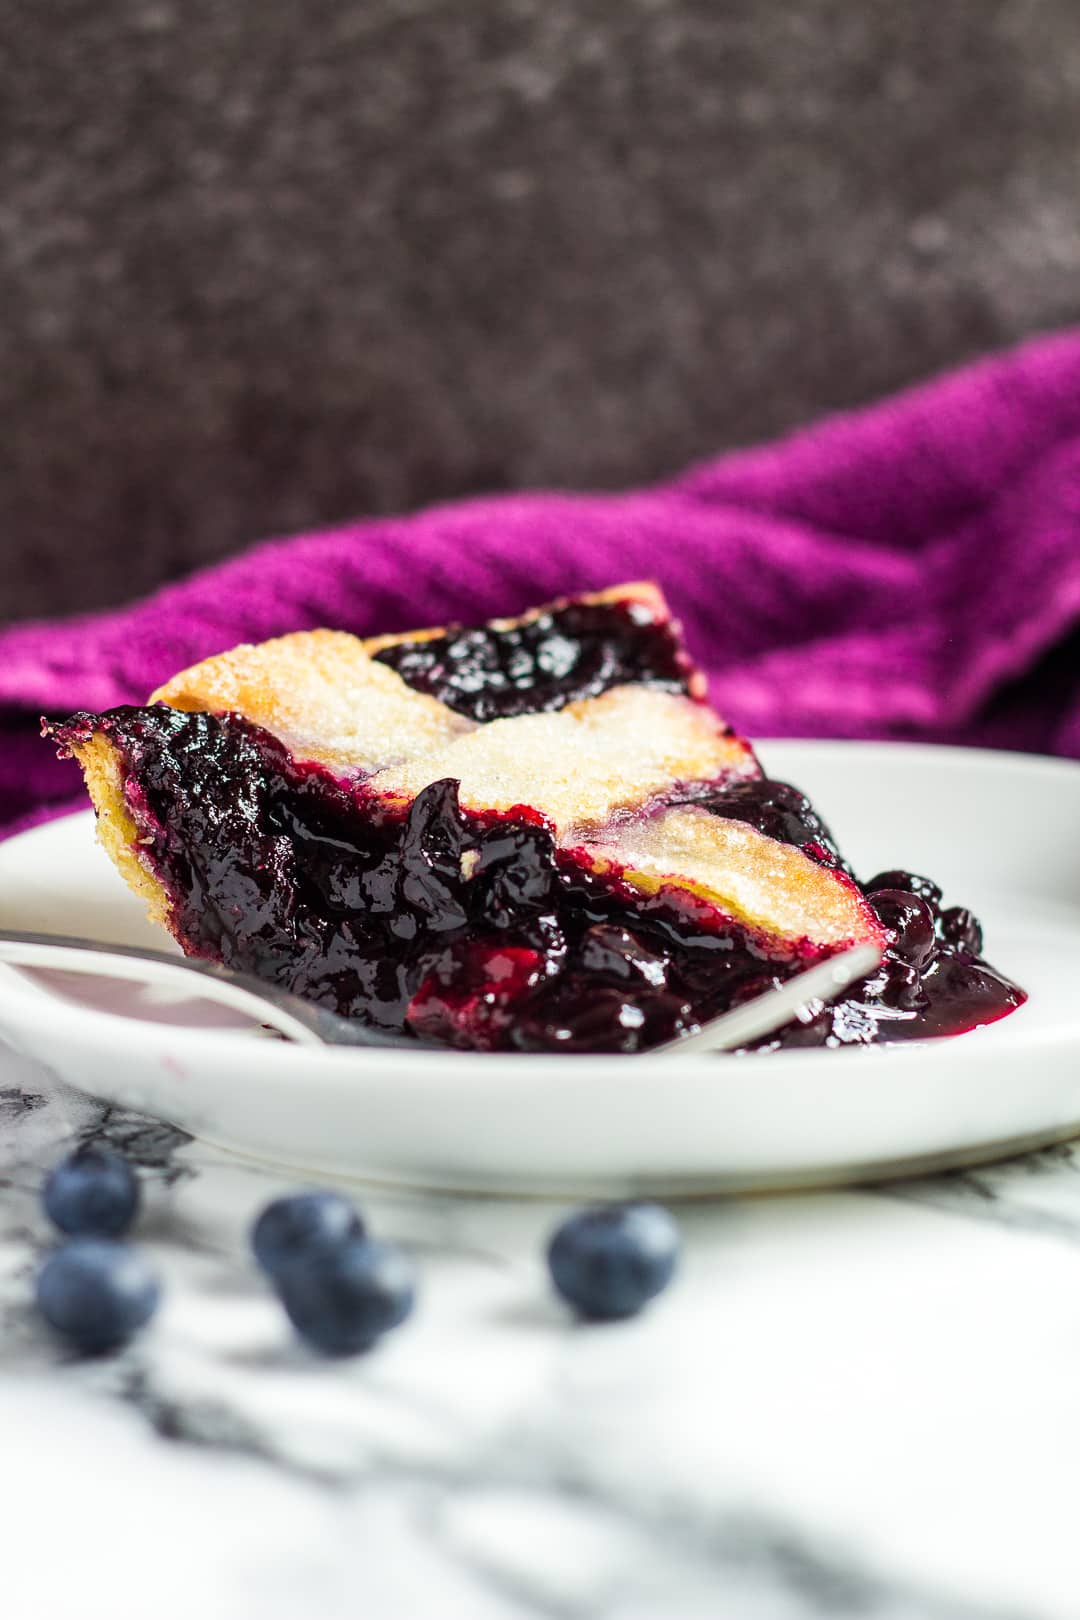 A slice of homemade blueberry pie served on a small white plate with a fork.